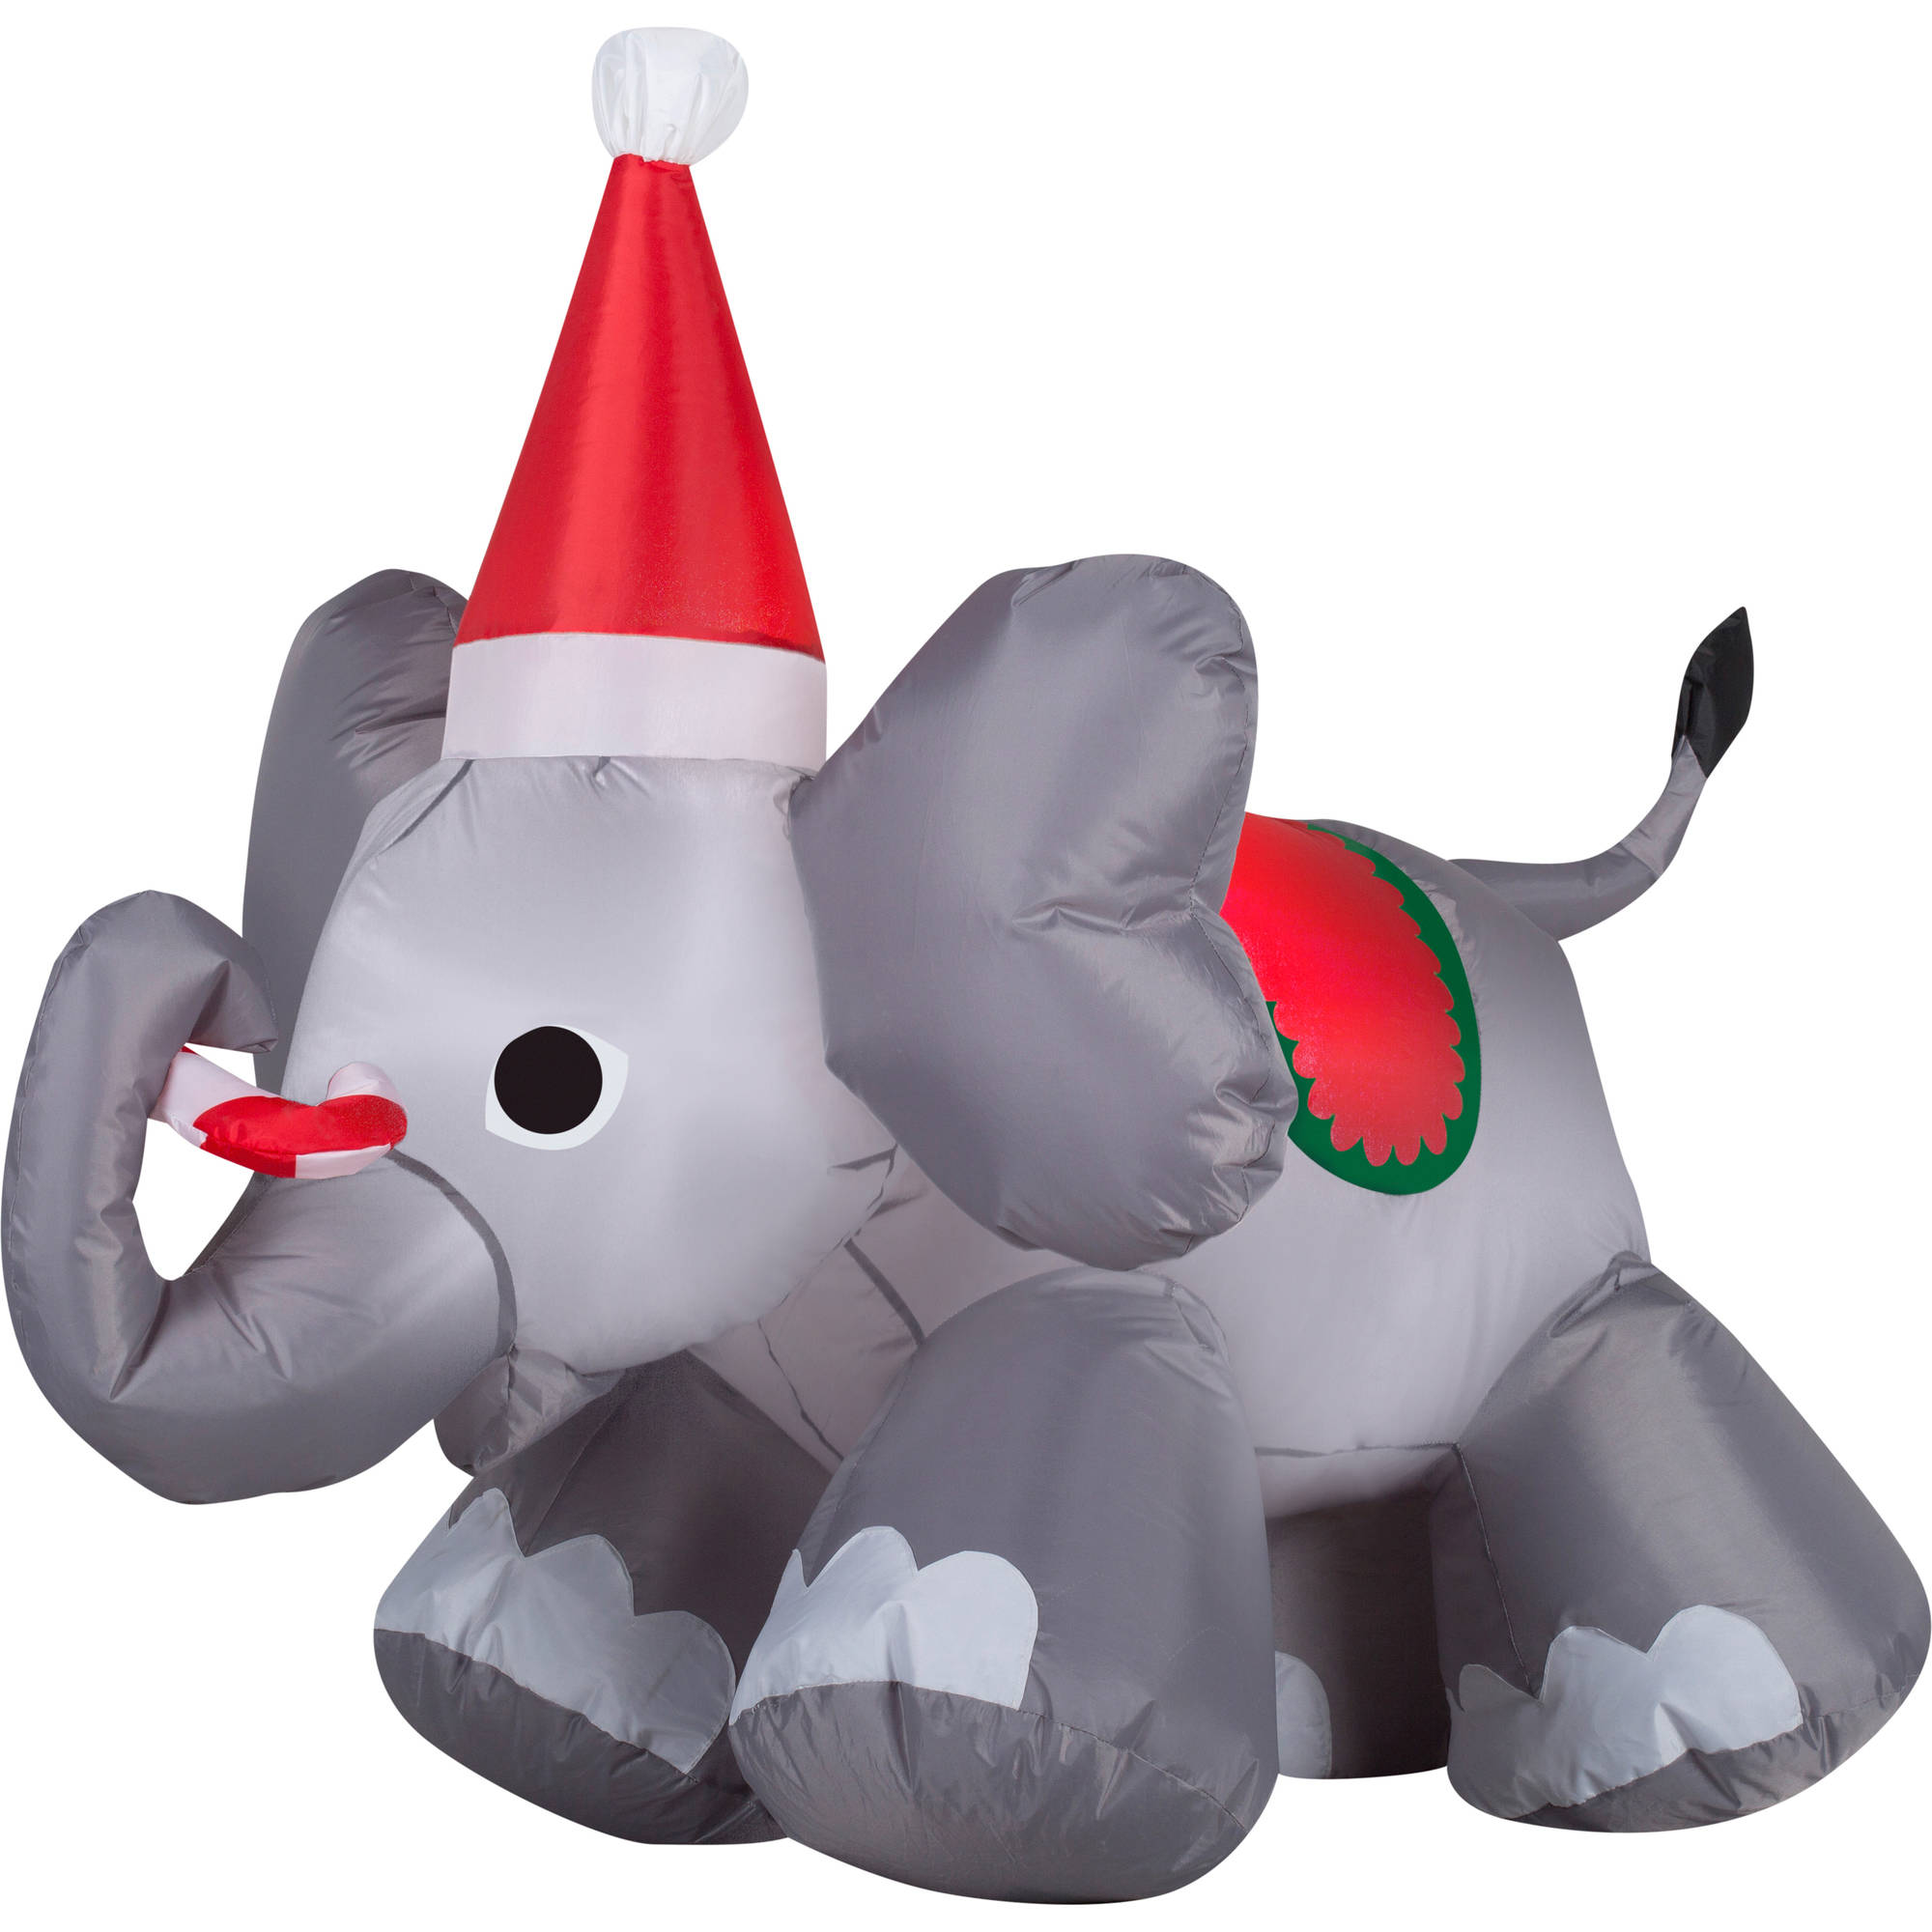 Gemmy Airblown Inflatable Christmas Elephant, 4'